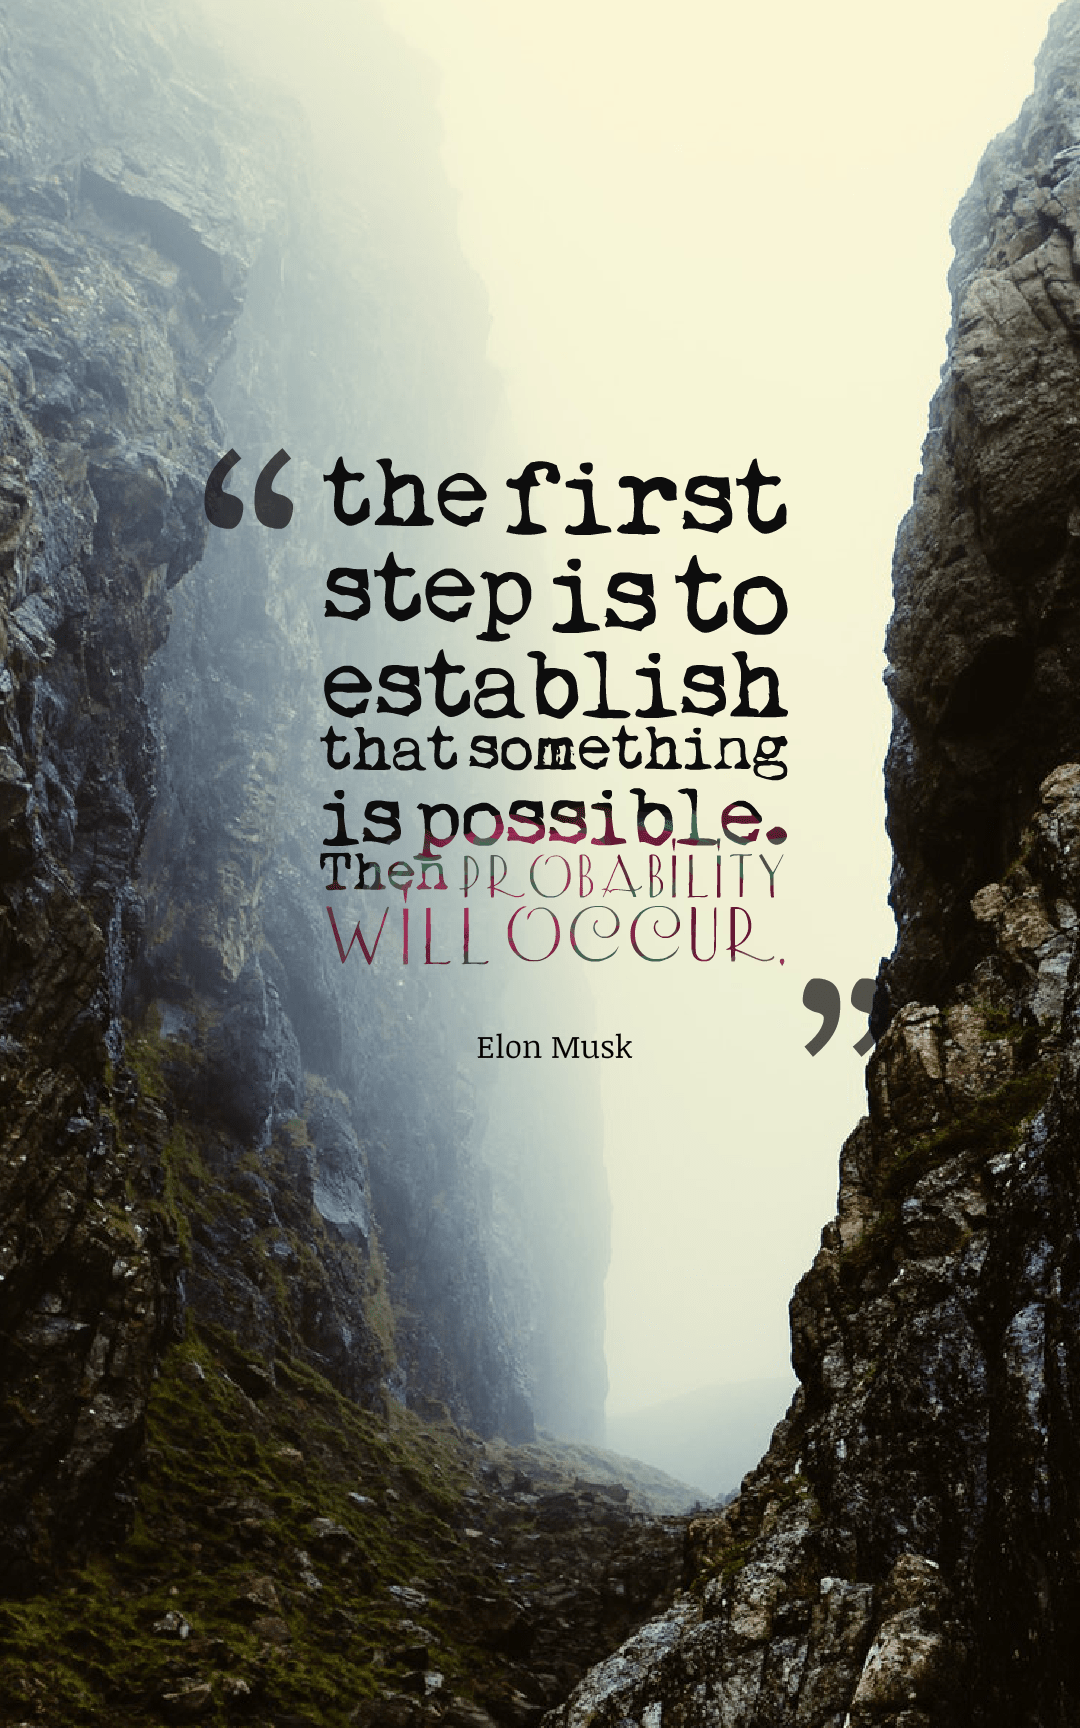 hi-res image of the first step is to establish that something is possible. Then probability will occur.